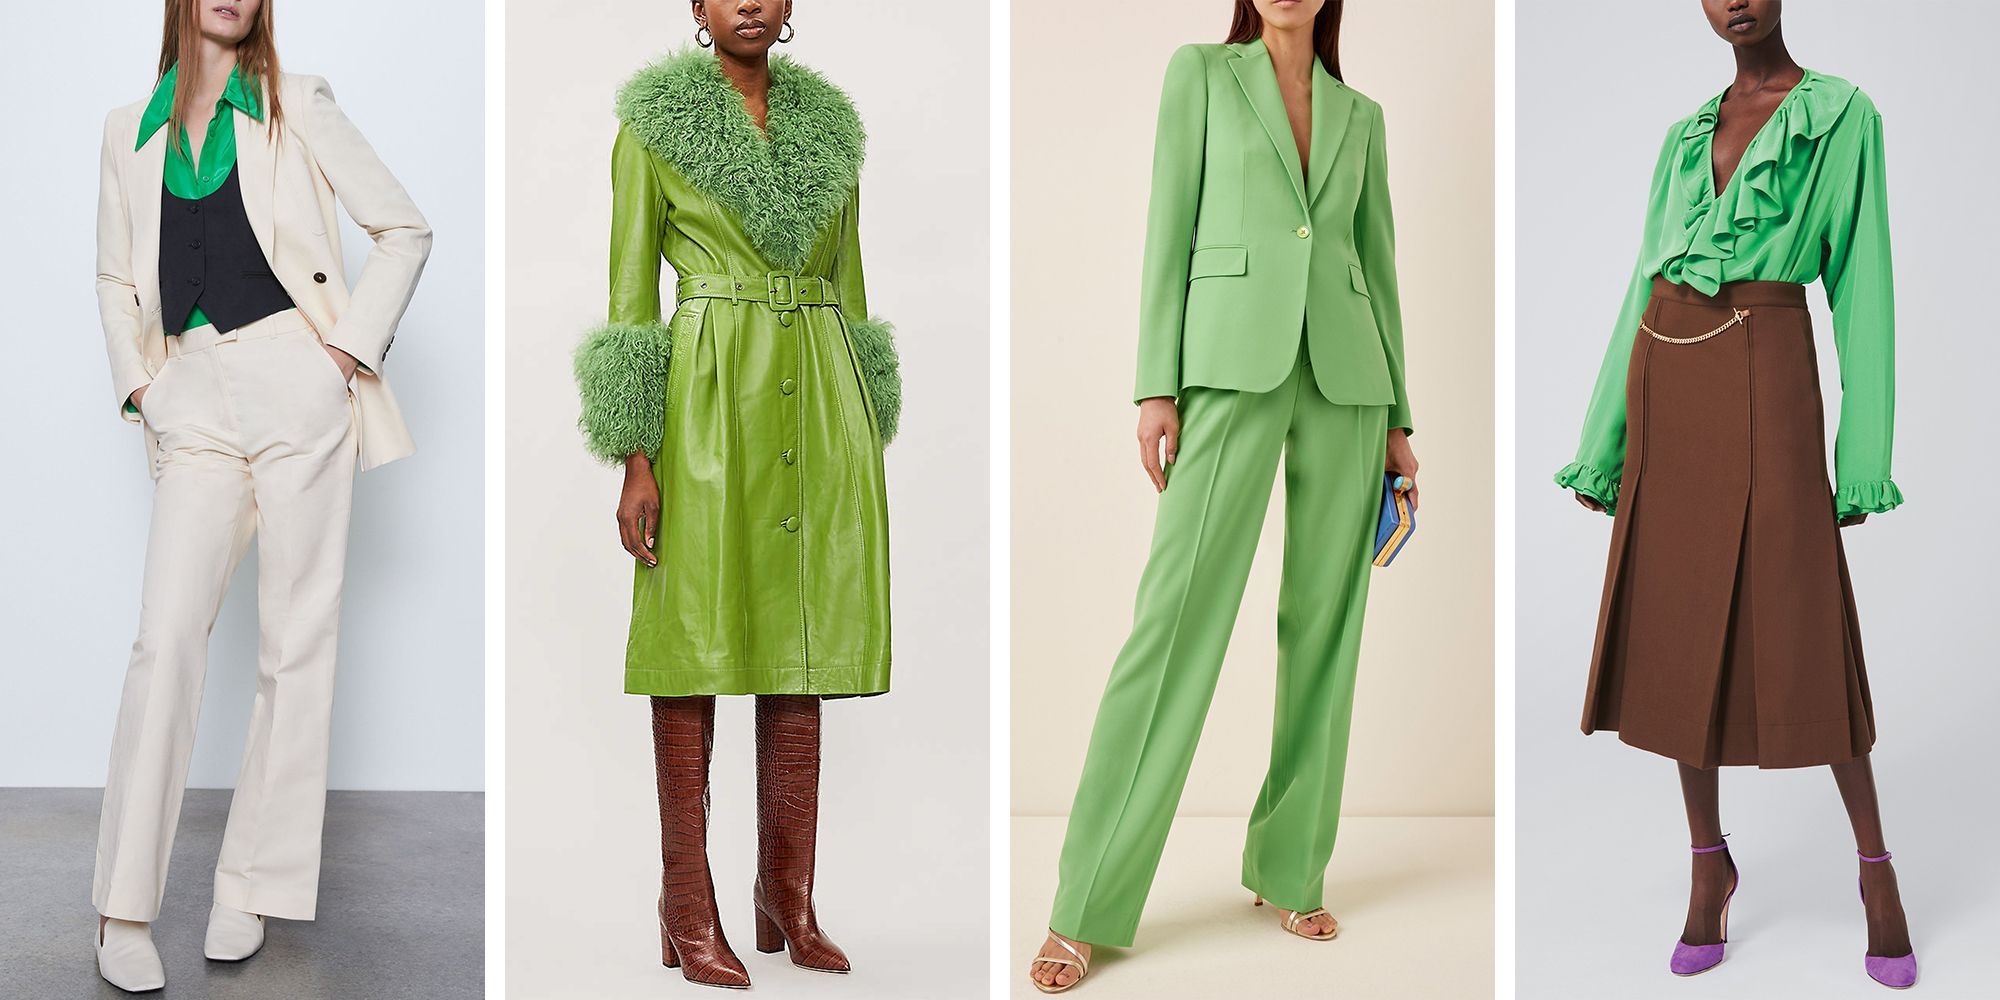 13 St. Patrick's Day Outfits That Say 'Don't Freaking Touch Me'